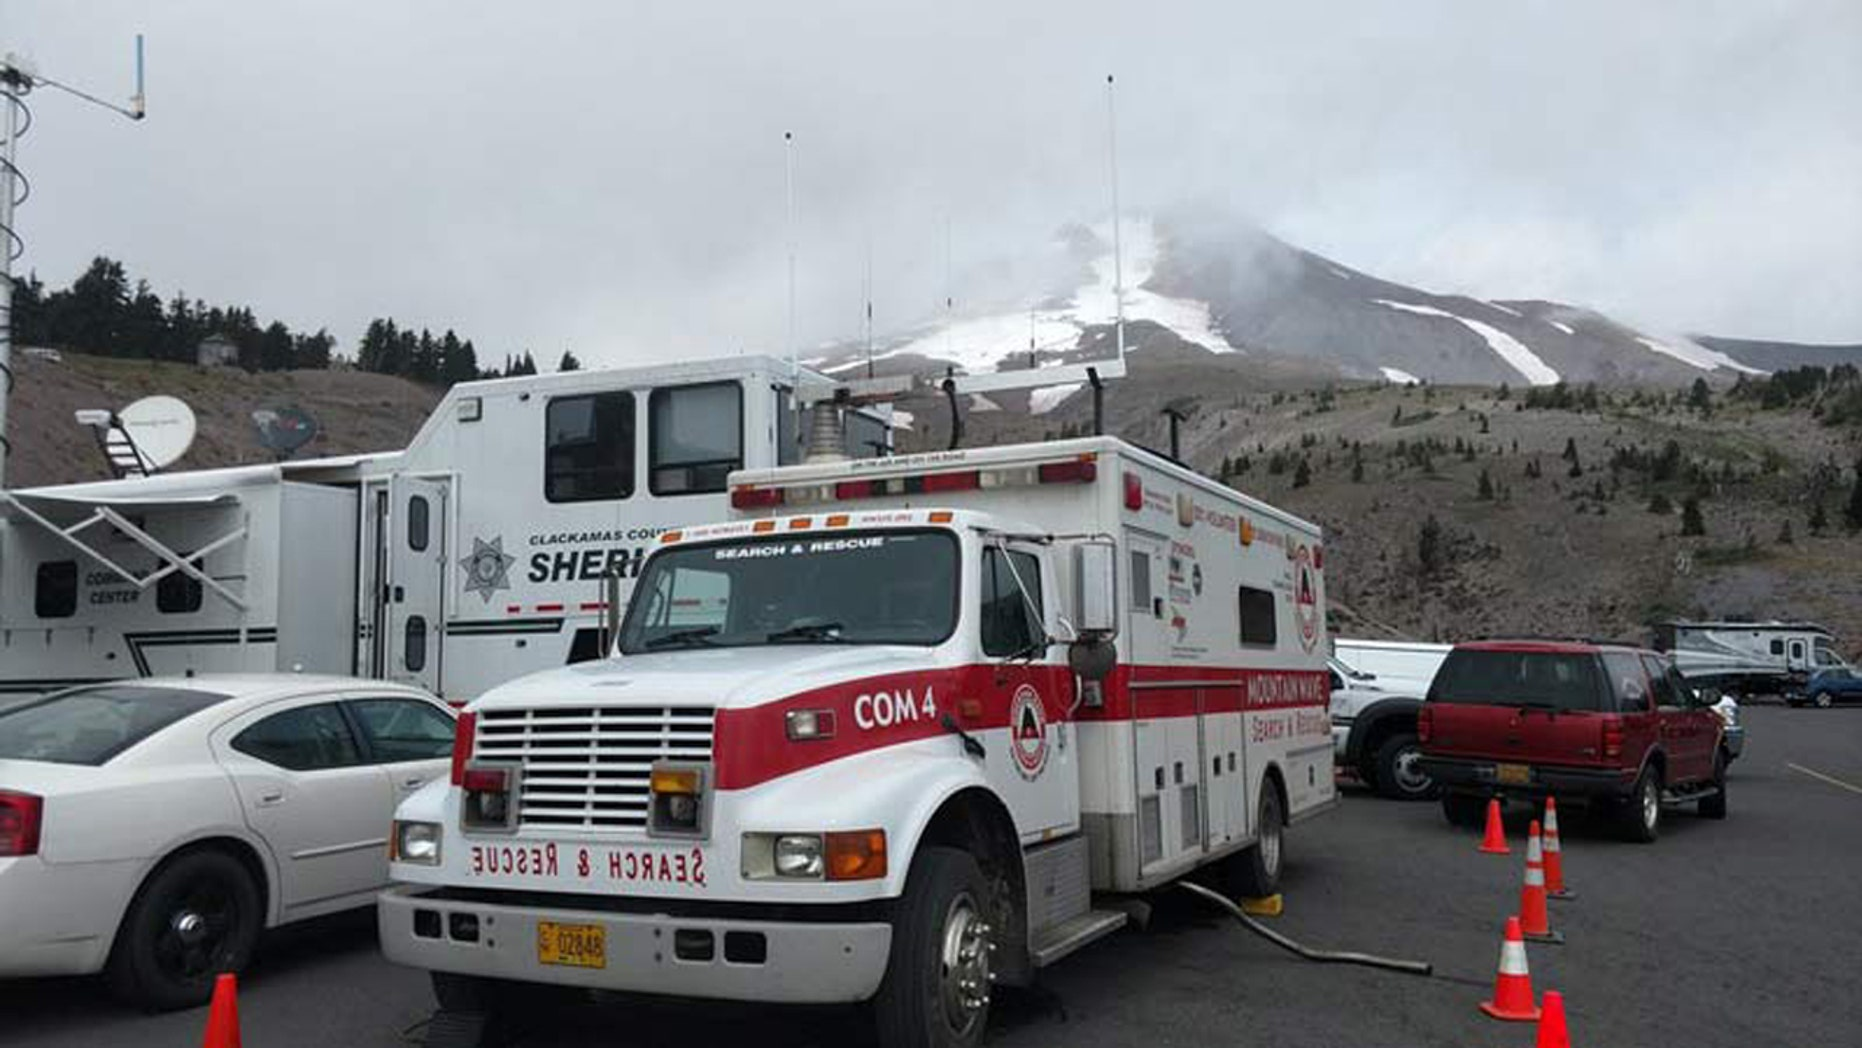 Two women from Portland died in an apparent fall on Mount Hood.